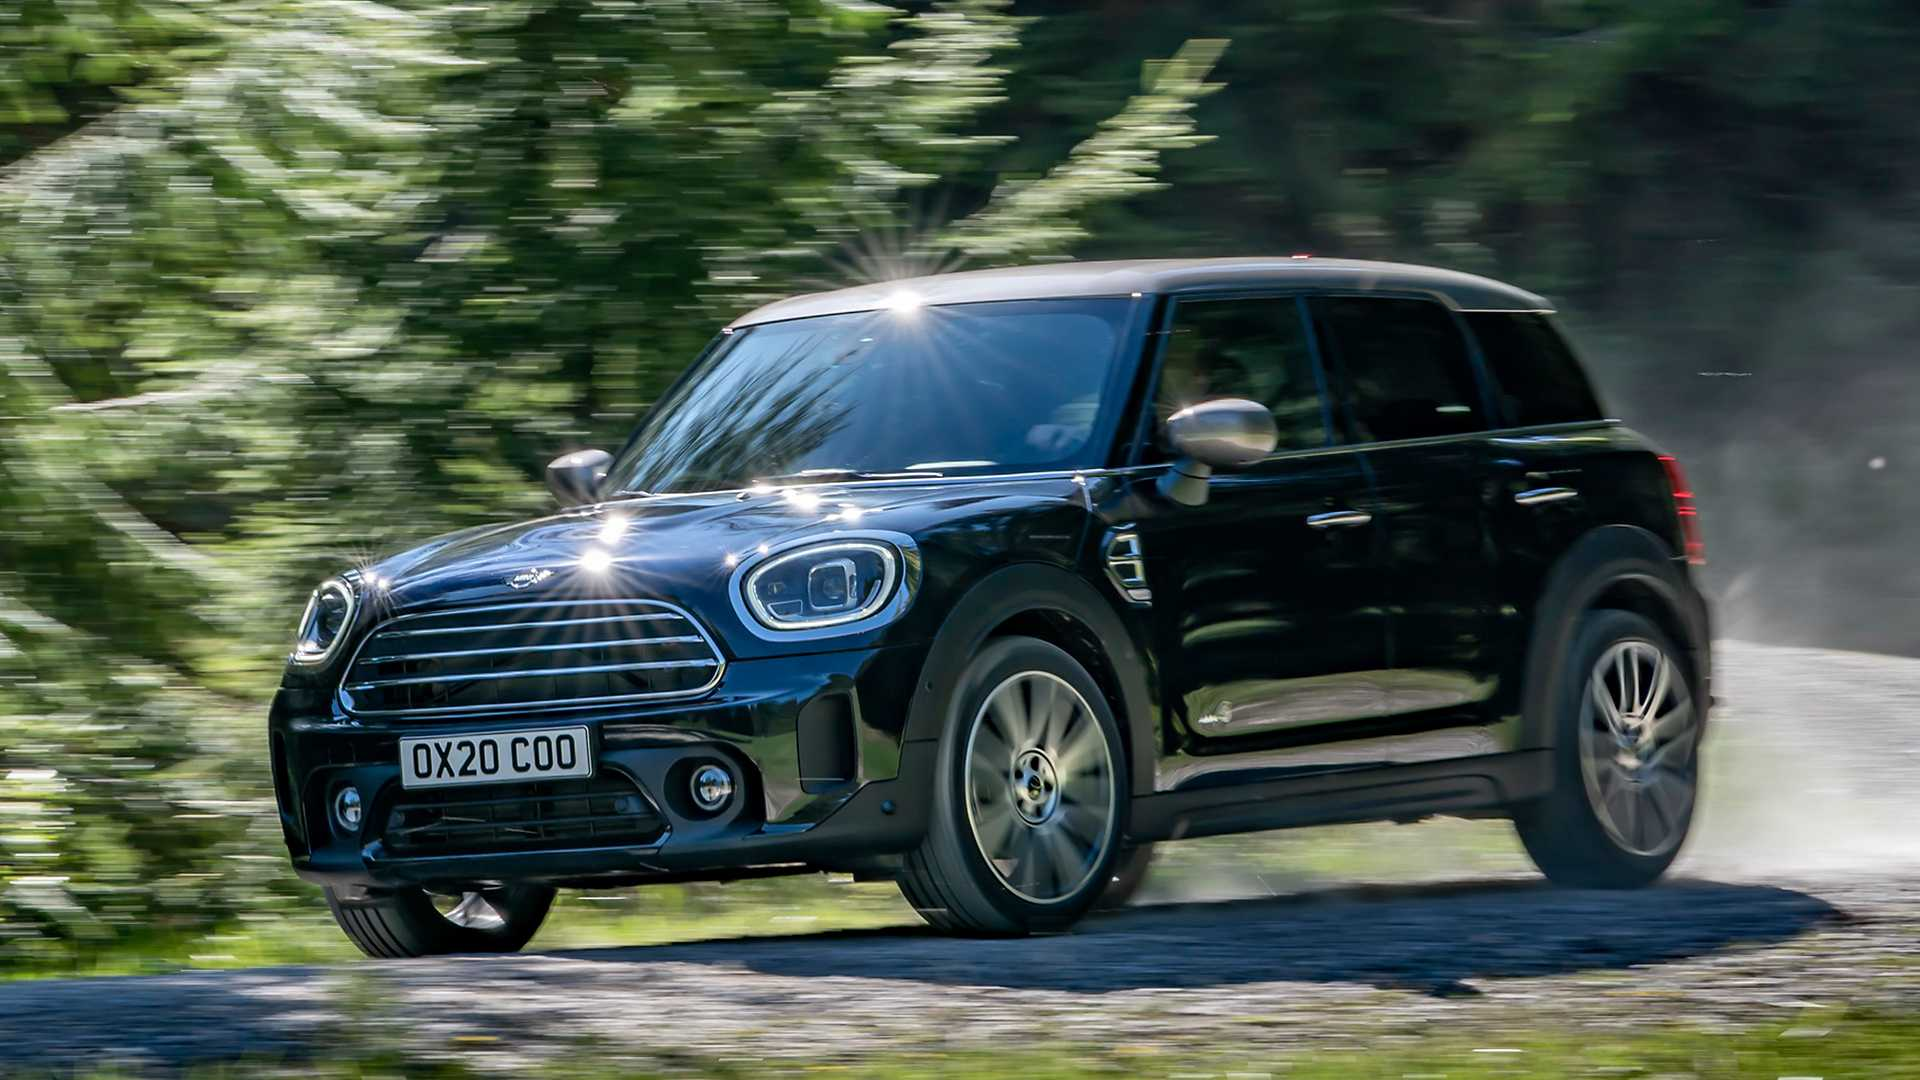 mini-cooper-countryman-all4-2020